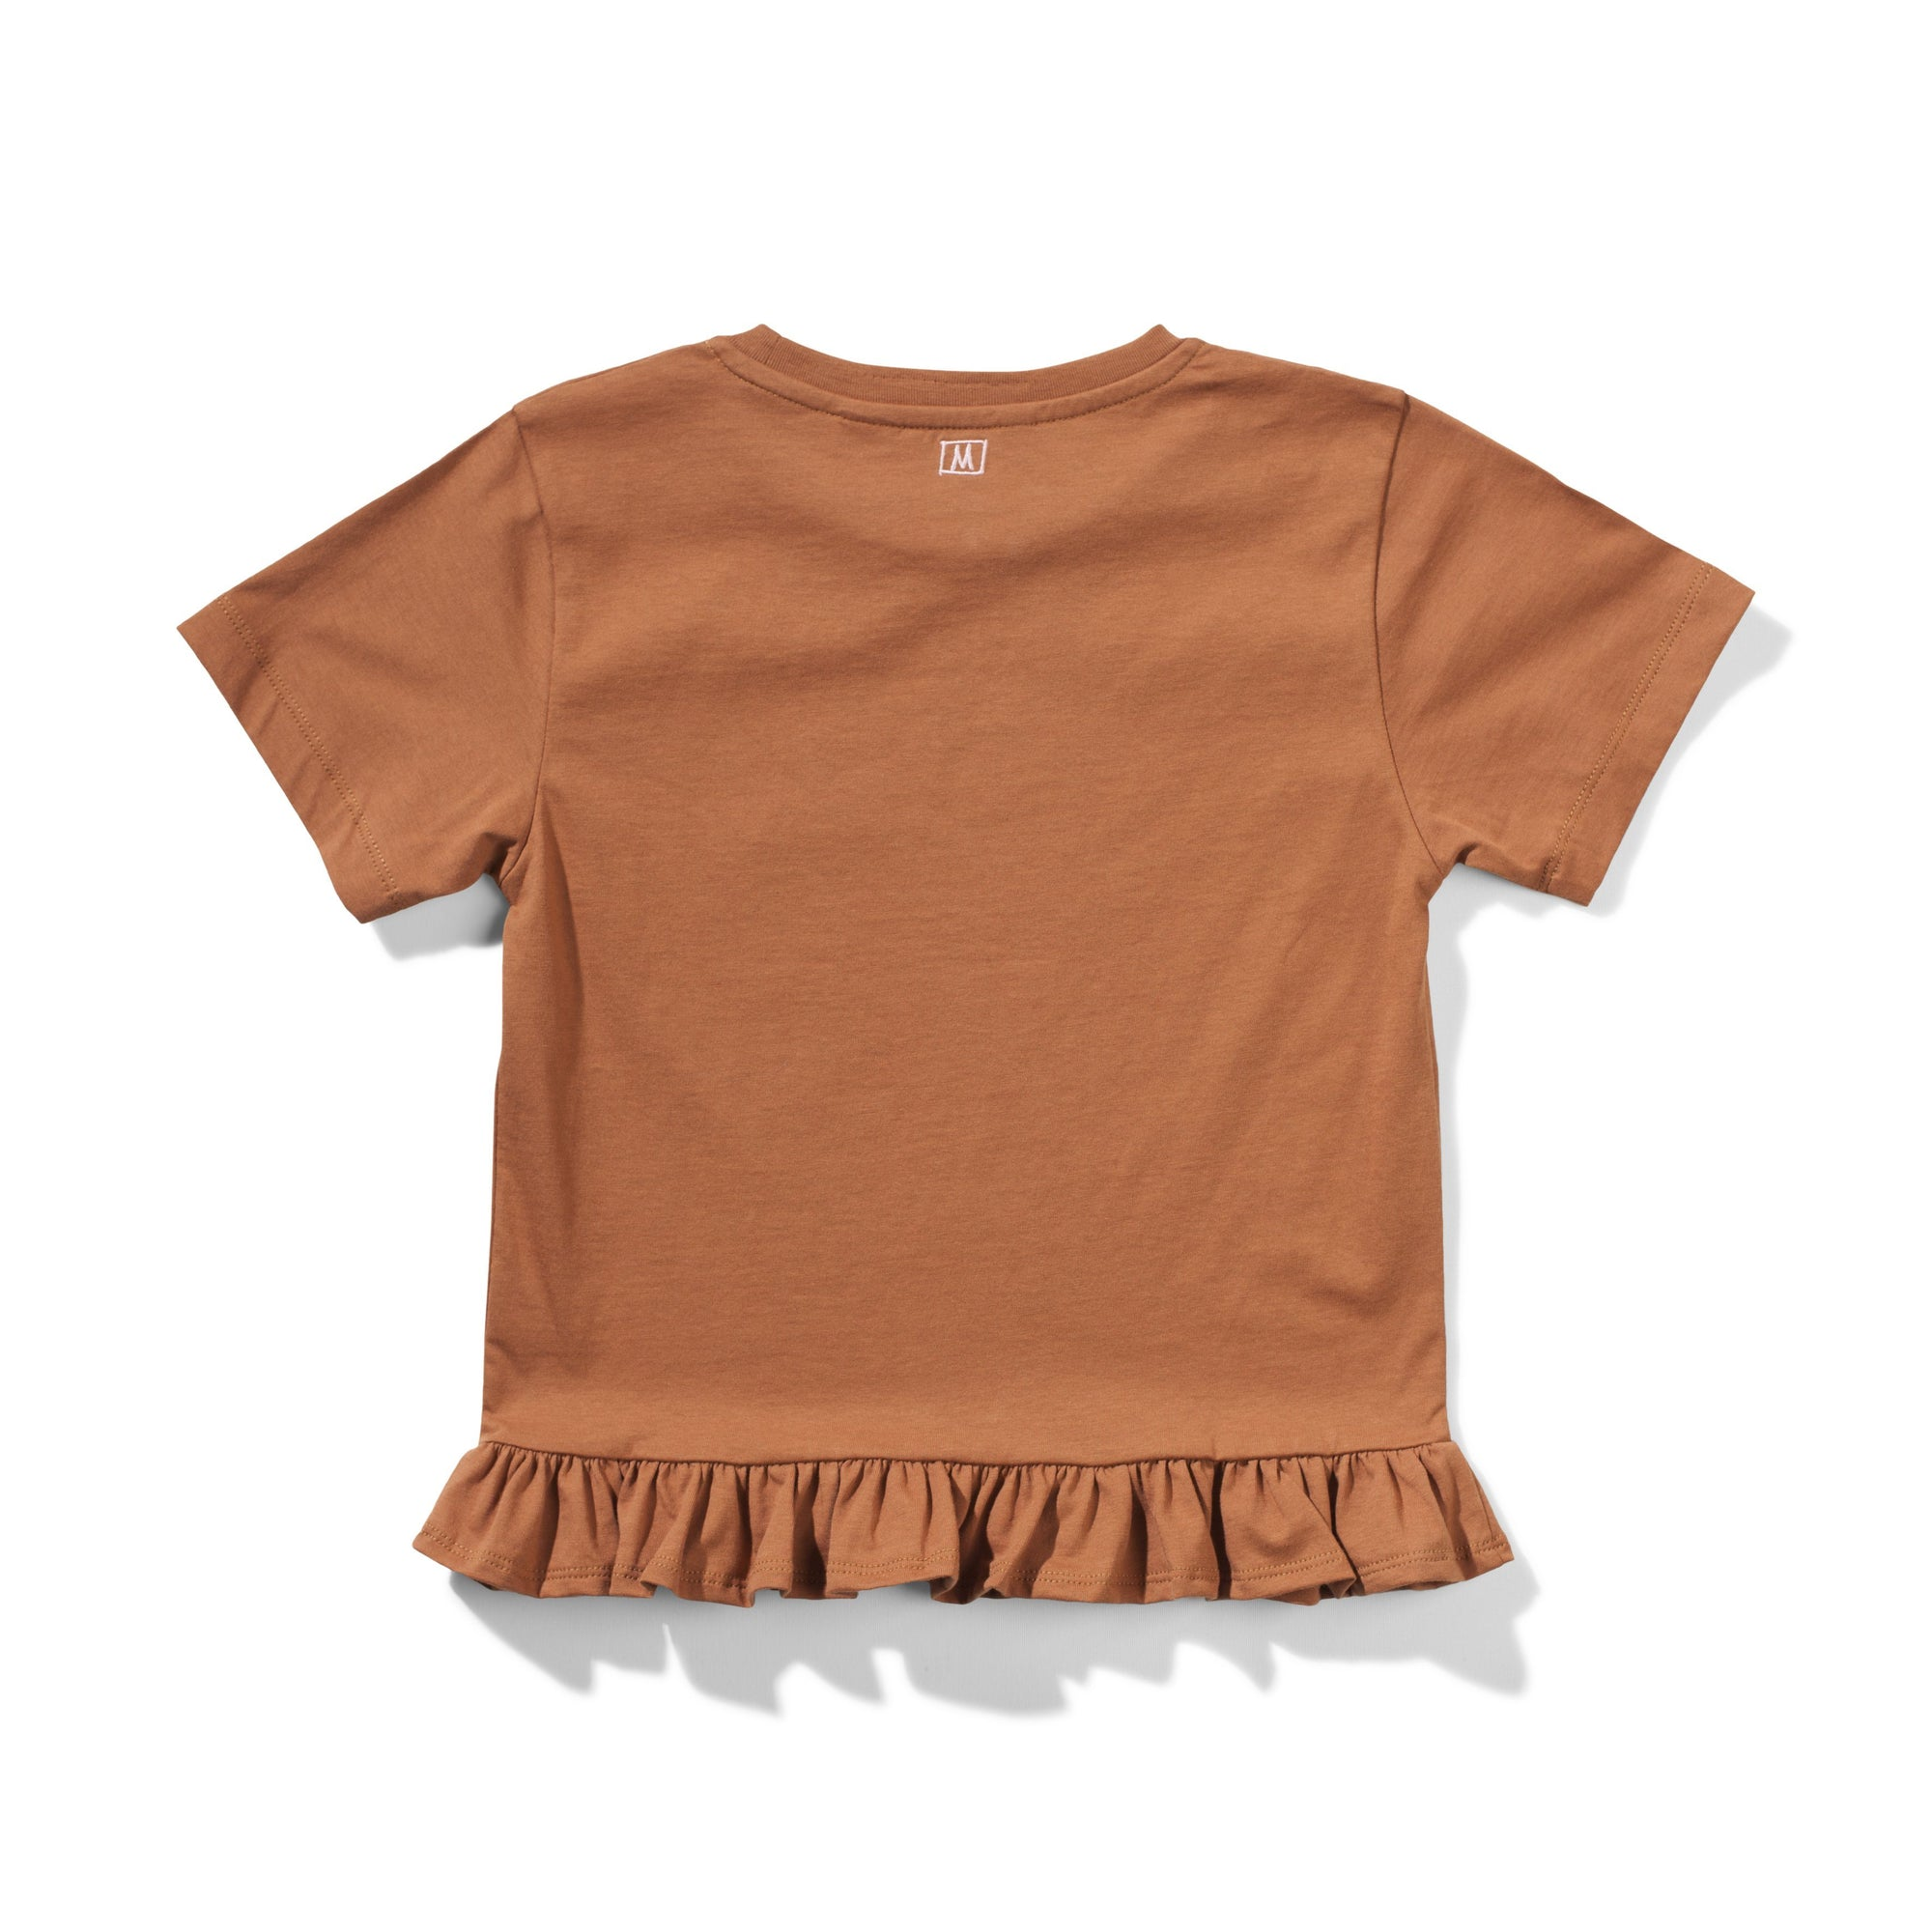 PRISM TEE LITTLE GIRLS CLOTHING MUNSTERKIDS